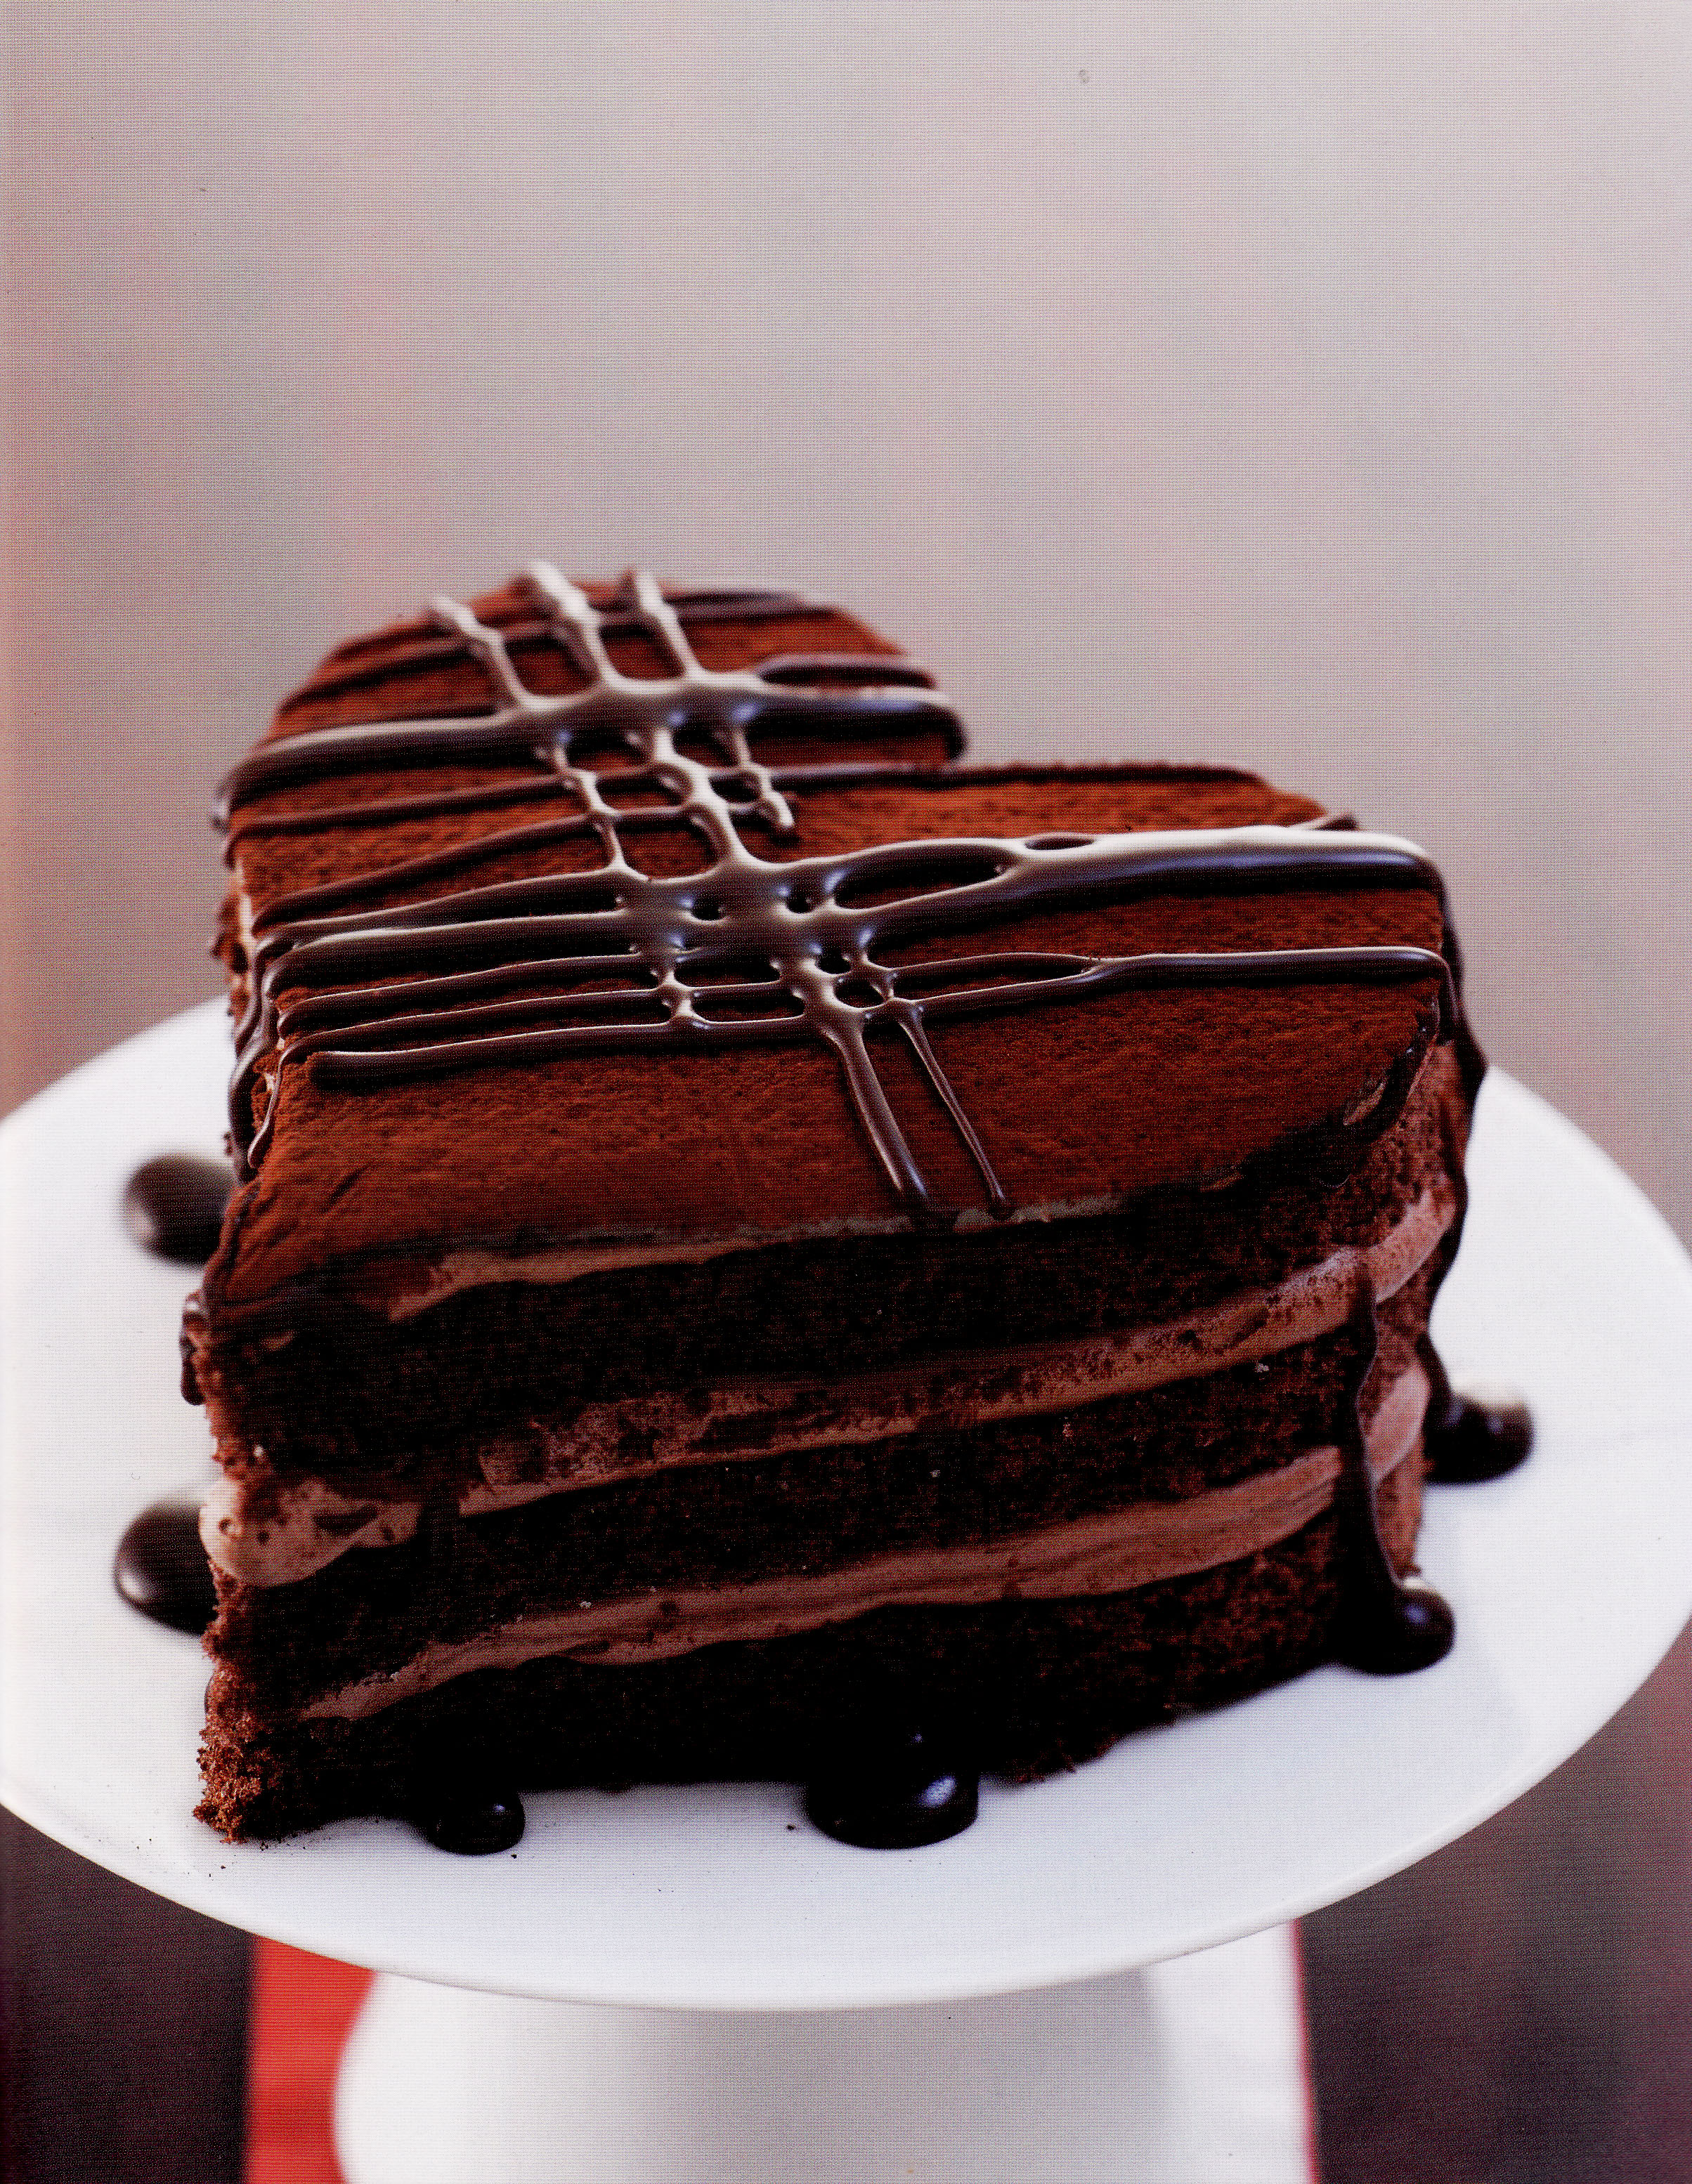 Heart Chocolate Cake Images : Valentine s Day Special   Chocolate Layer Cake   Food 4 ...